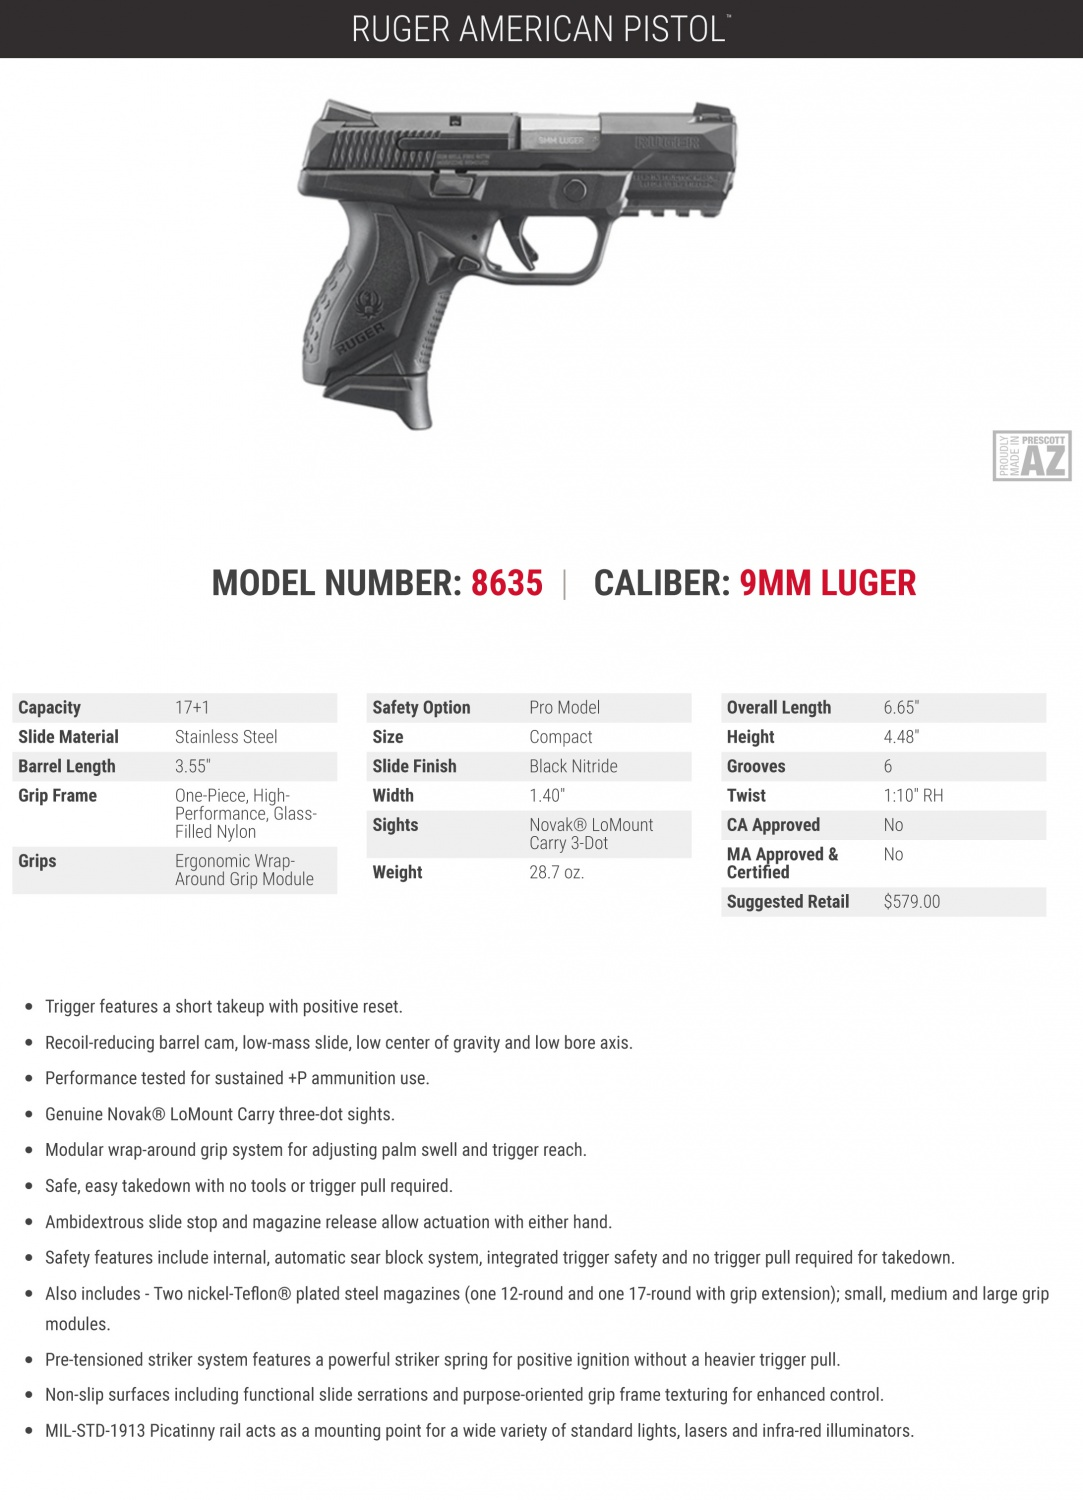 Ruger Completes the American Pistol Line-Up with a 9mm